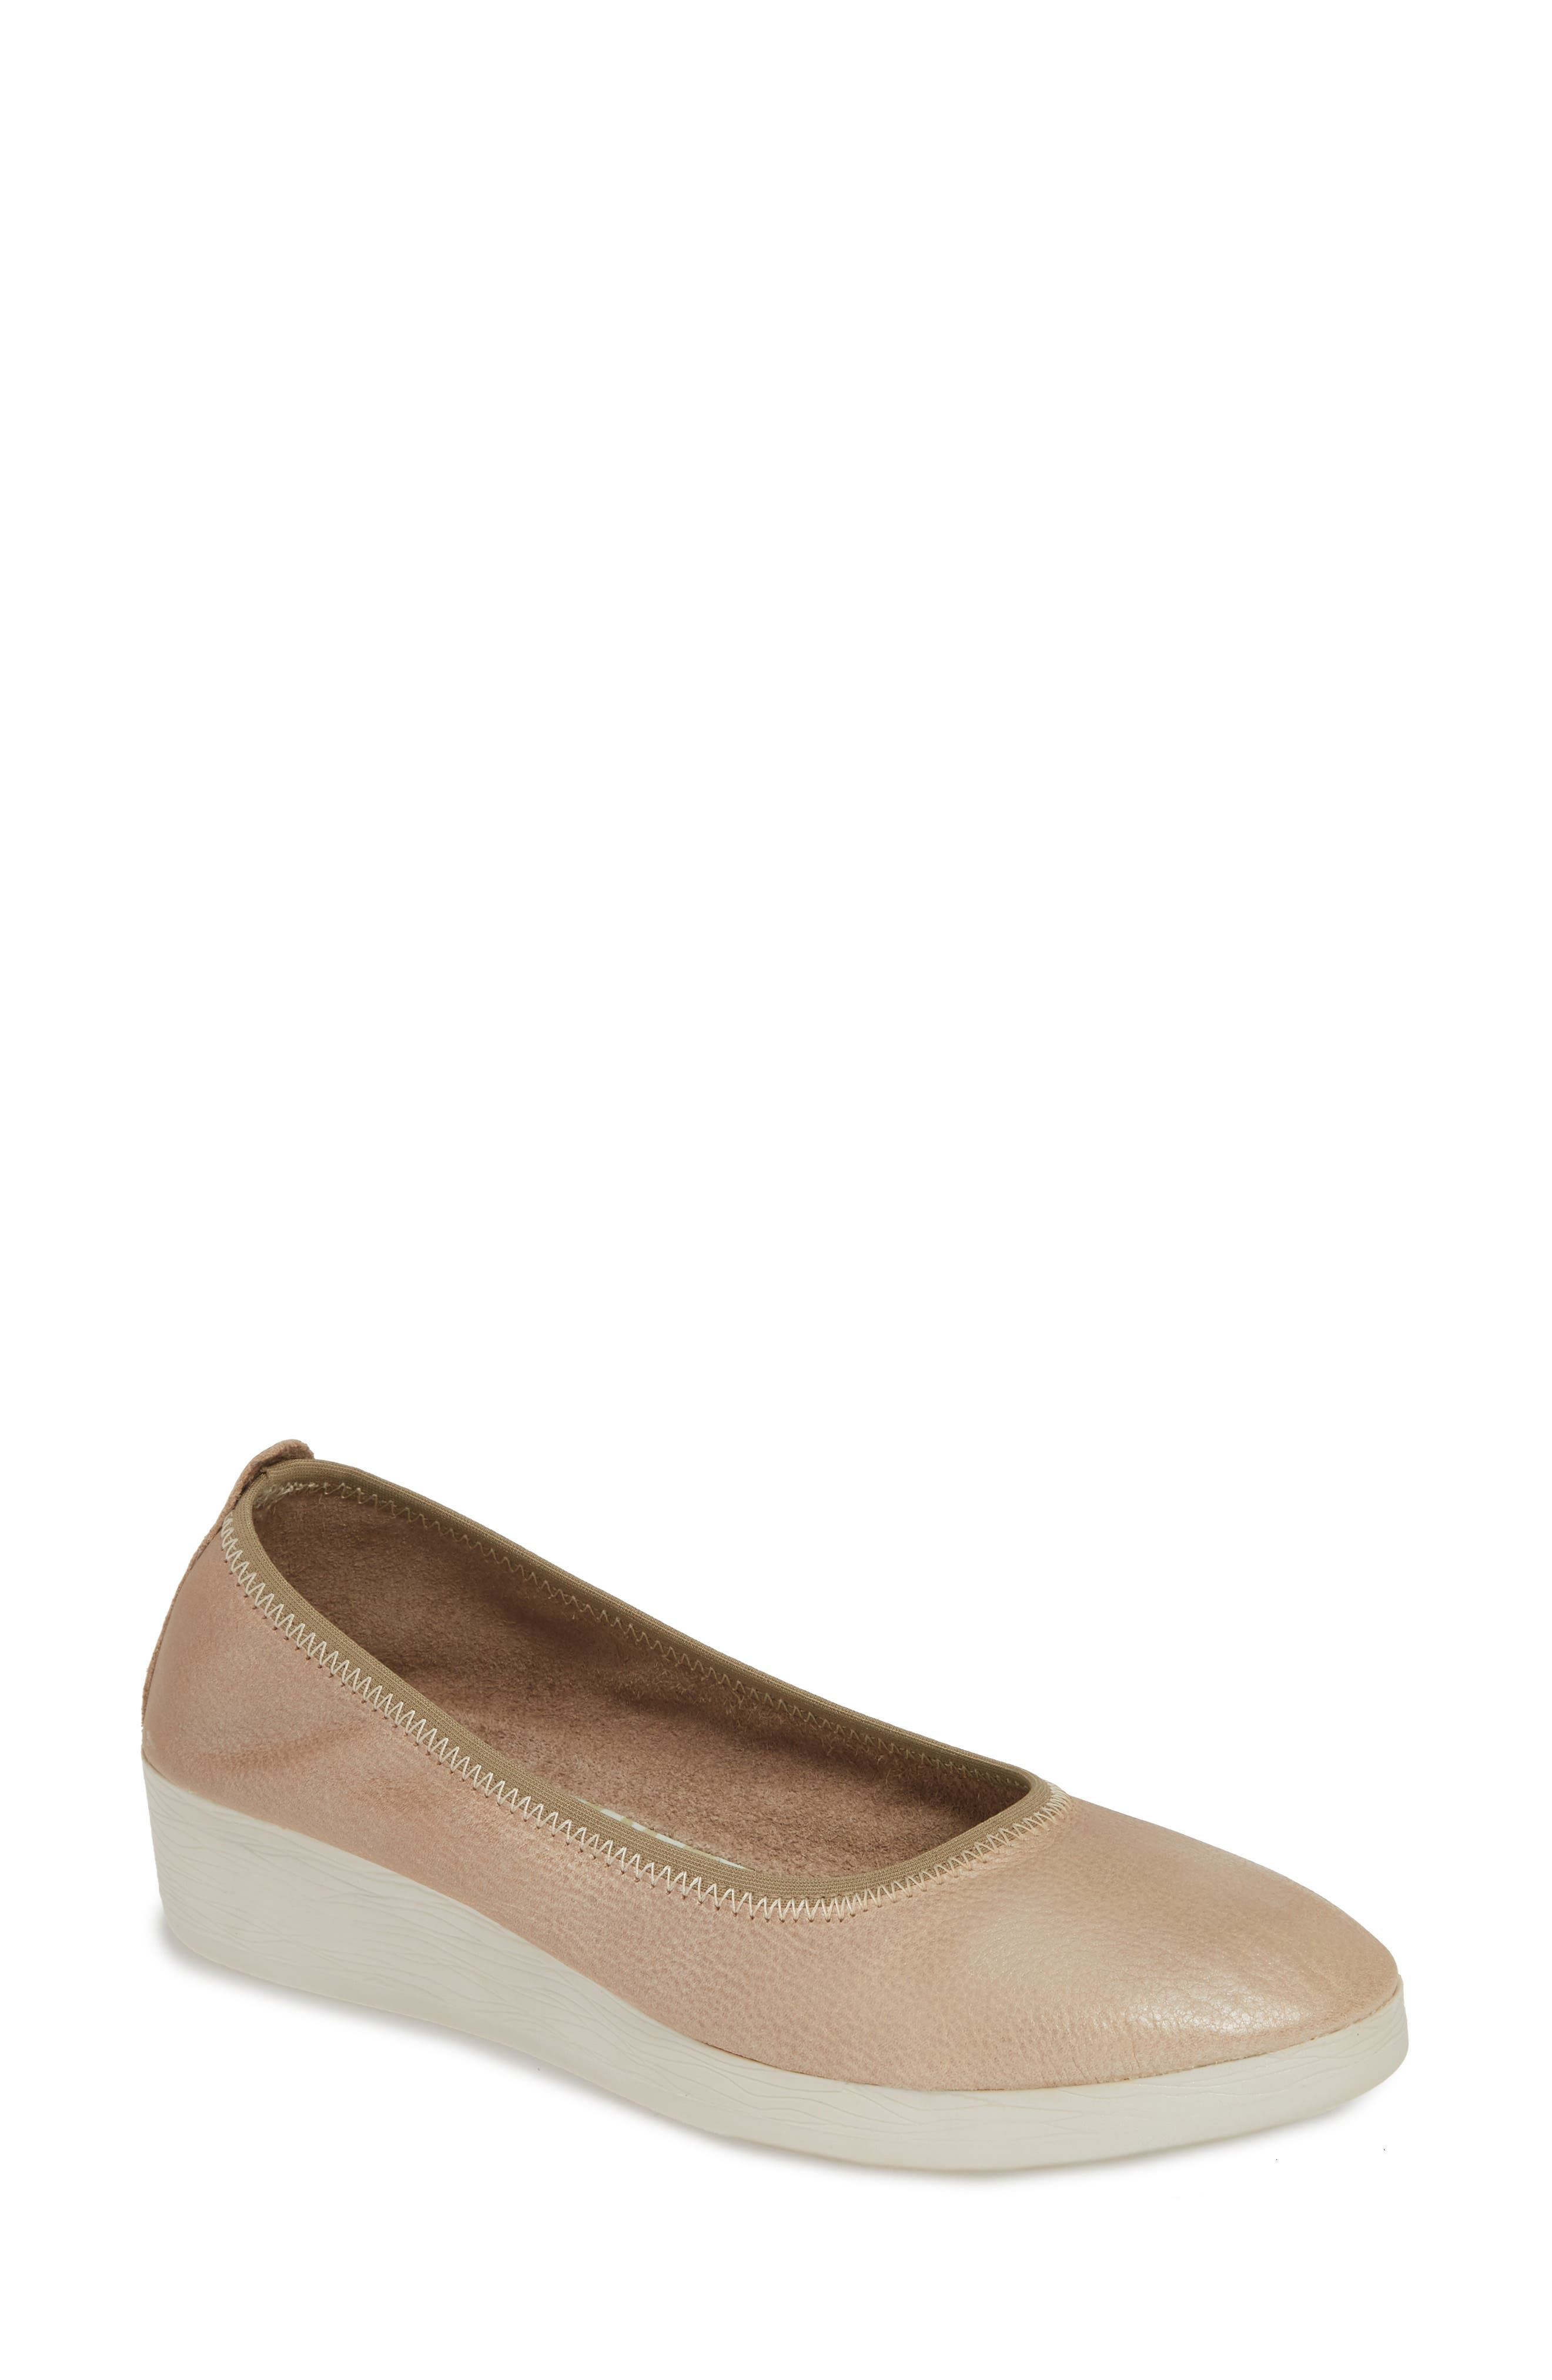 Softinos By Fly London Avo Flat, Ivory